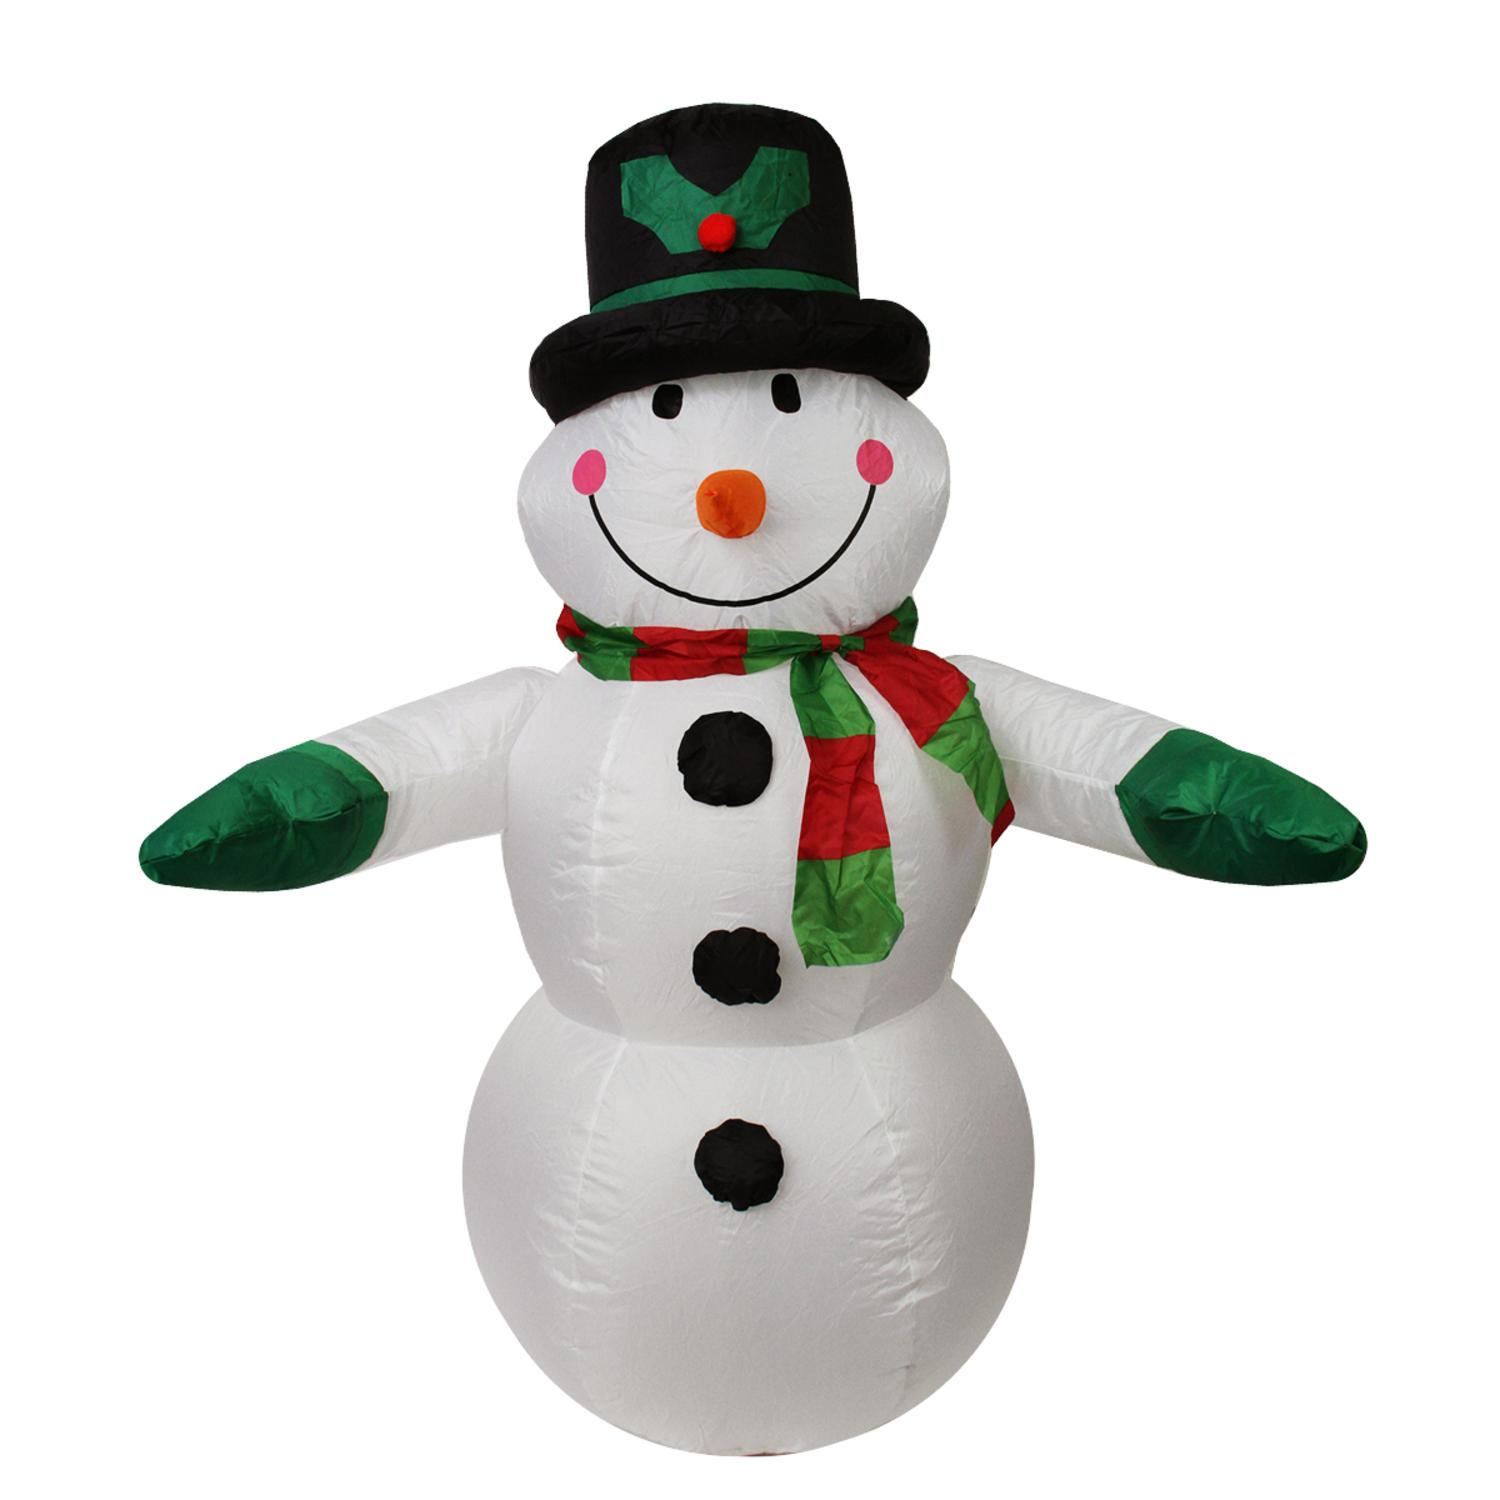 Lb International 4 ft. Inflatable Lighted Snowman with Top Hat Christmas Yard Display - 32275078